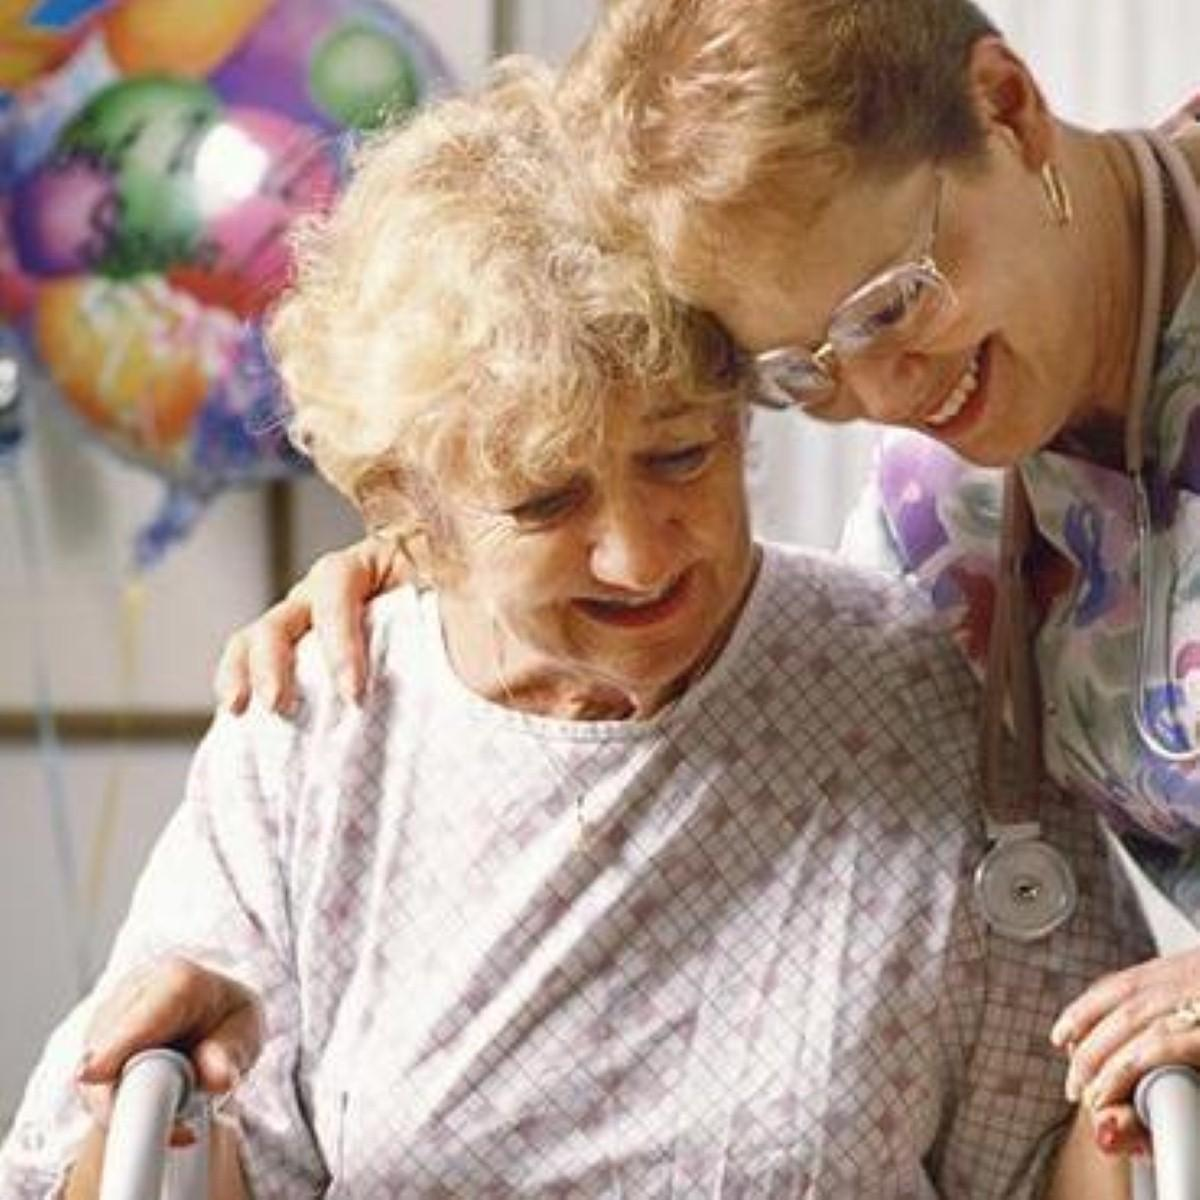 Most Brits 'have no idea about care costs'